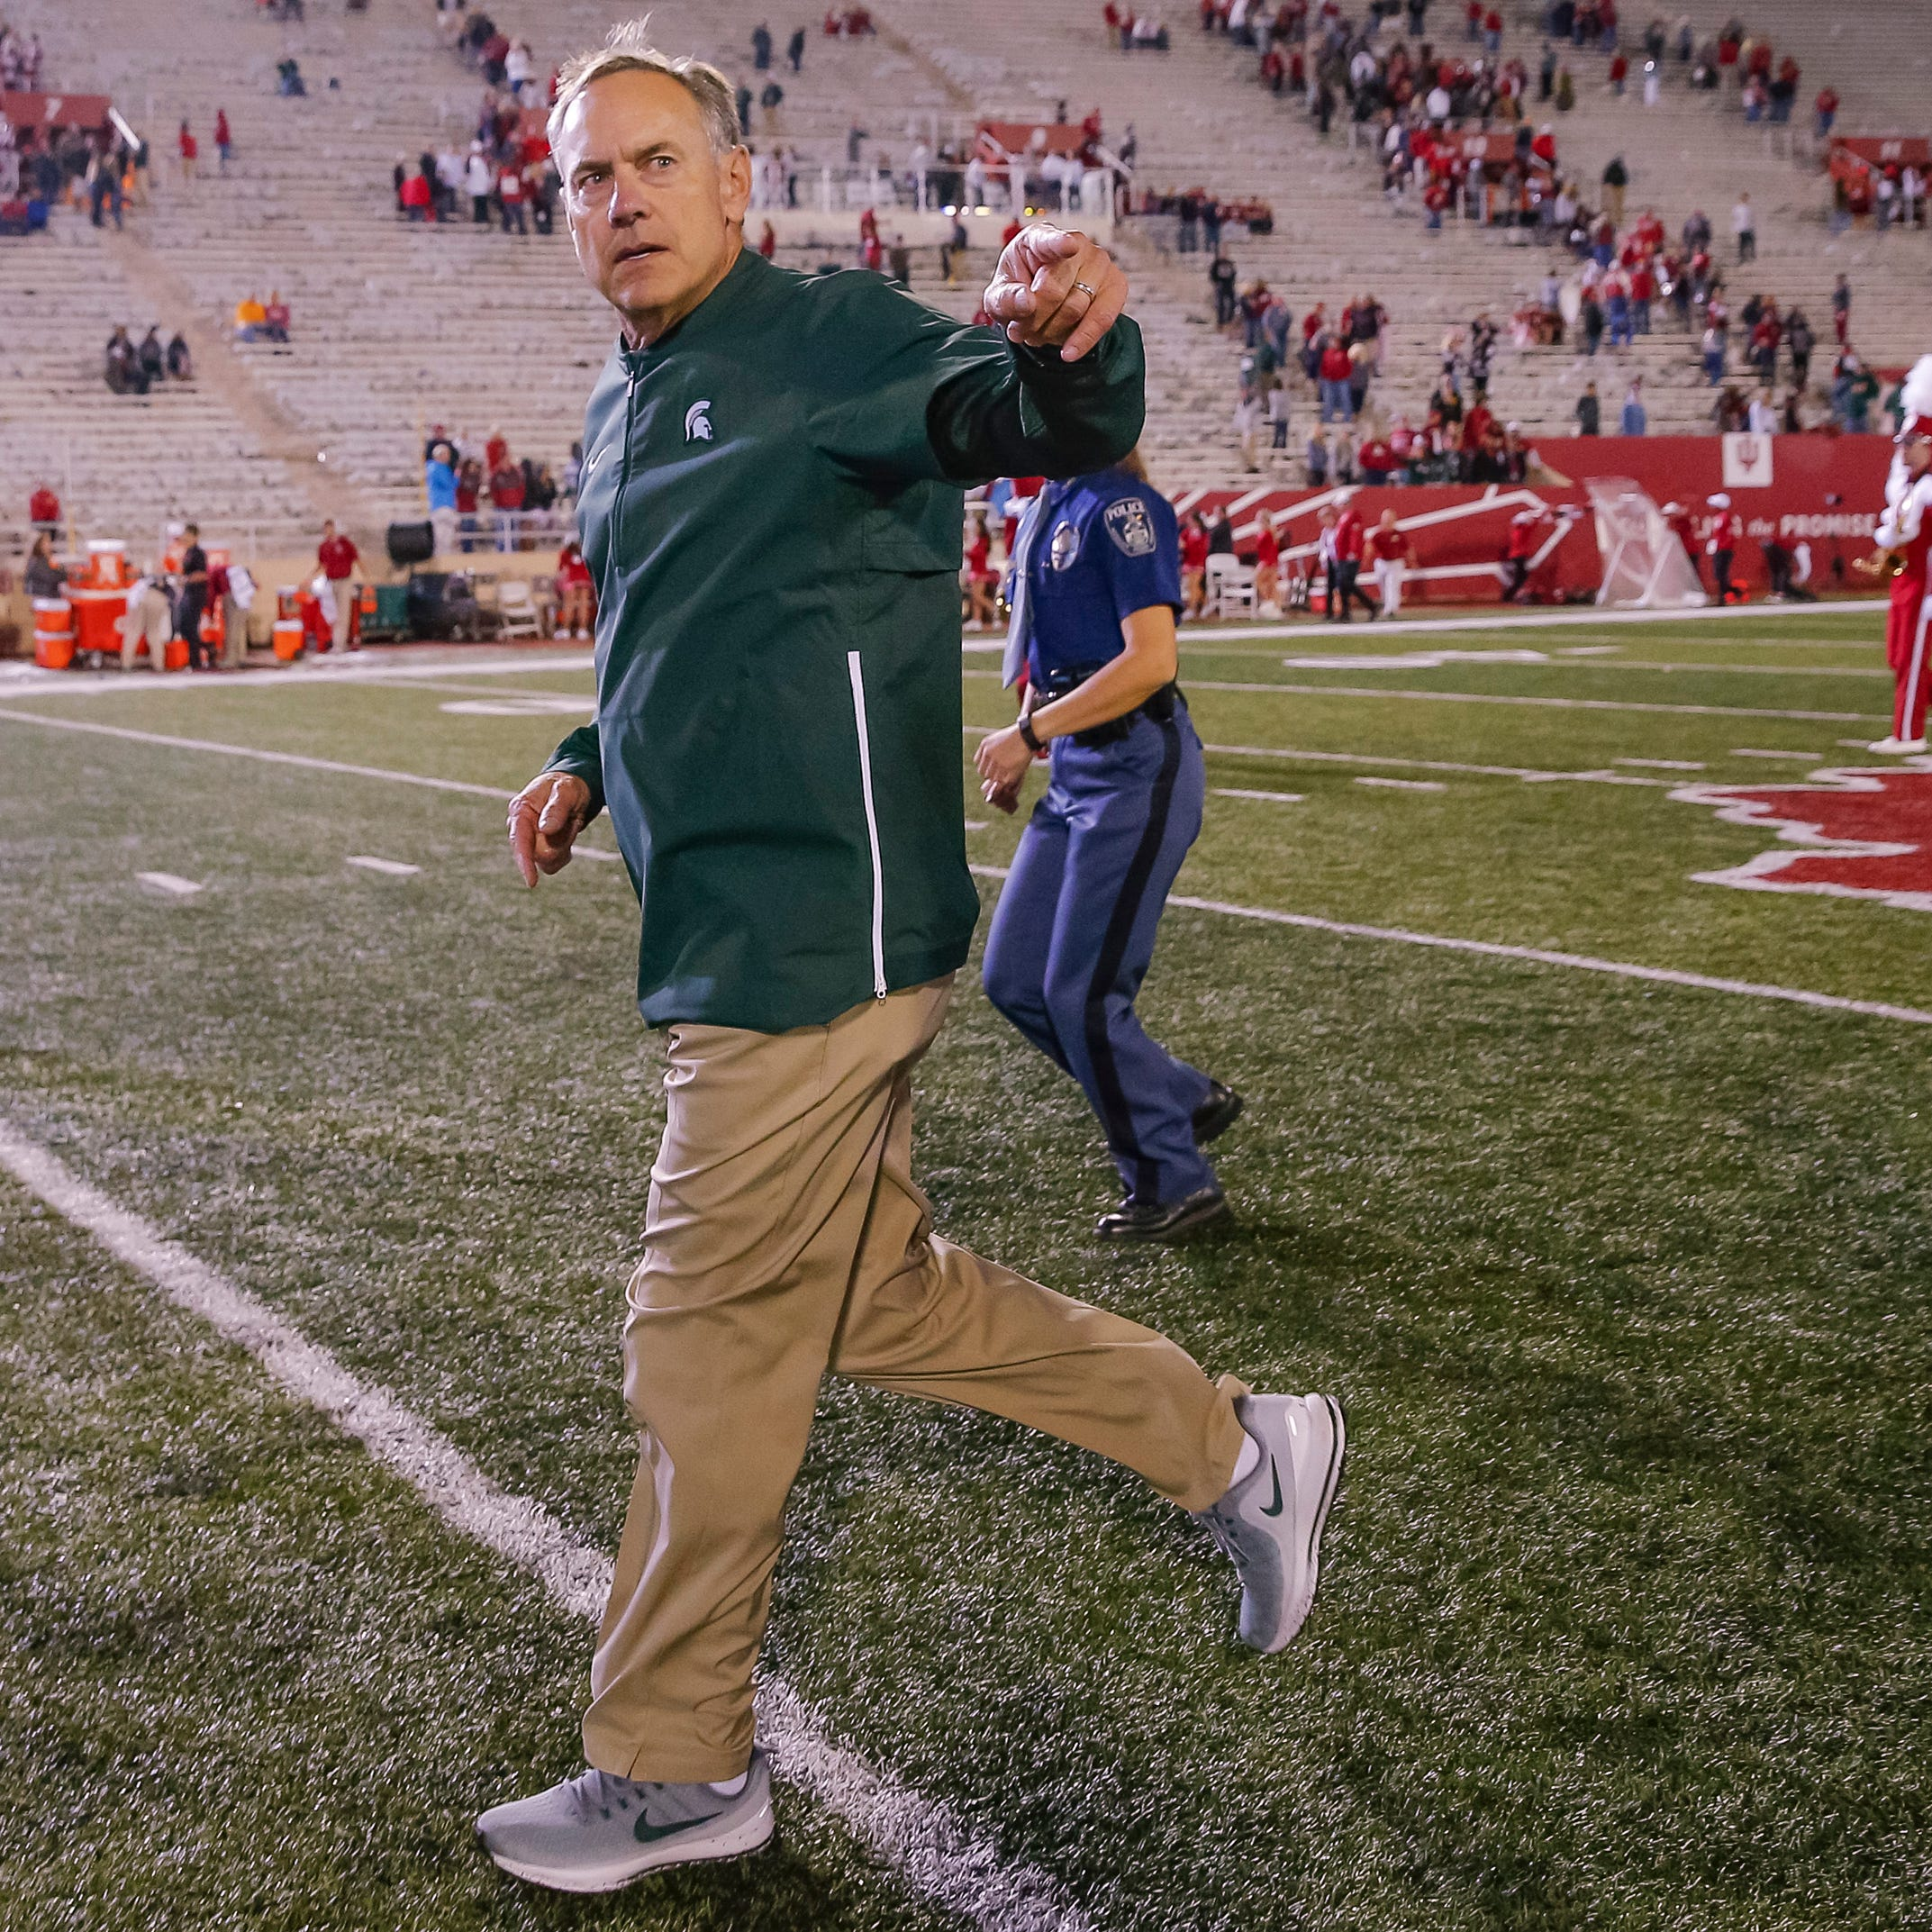 Grading Michigan State's performance in a 35-21 win at Indiana